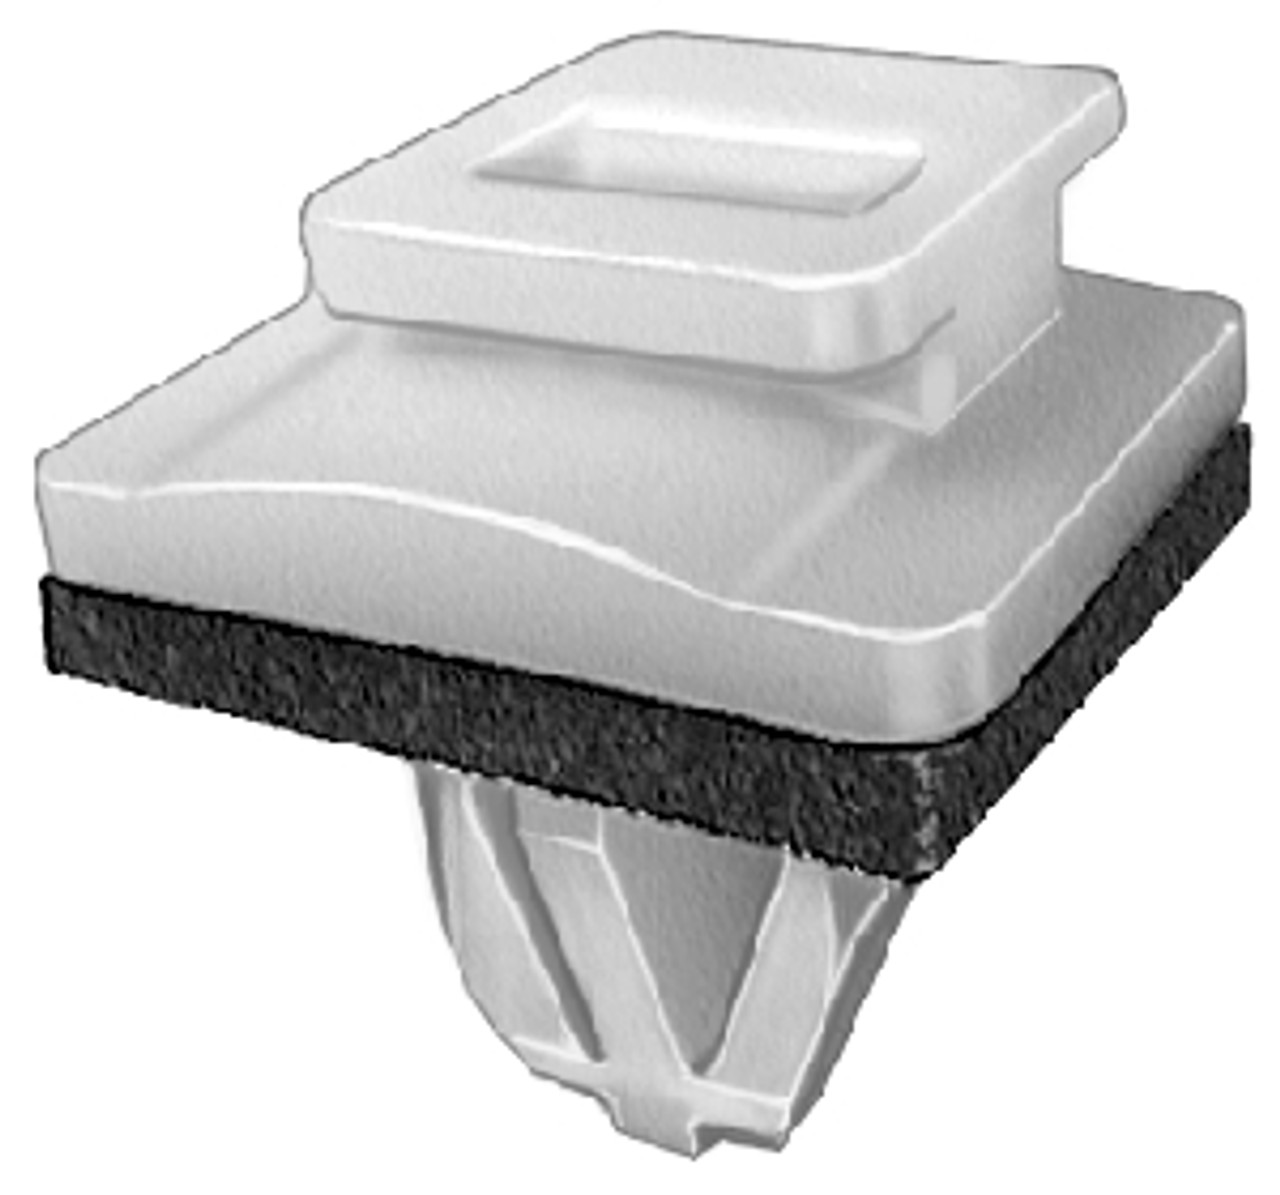 Side Sill Garnish Moulding Clip Acura Legend Coupe 1991-On OEM# 91501-SP1-003 Nylon 10 Per Box Click Next Image For Clip Detail